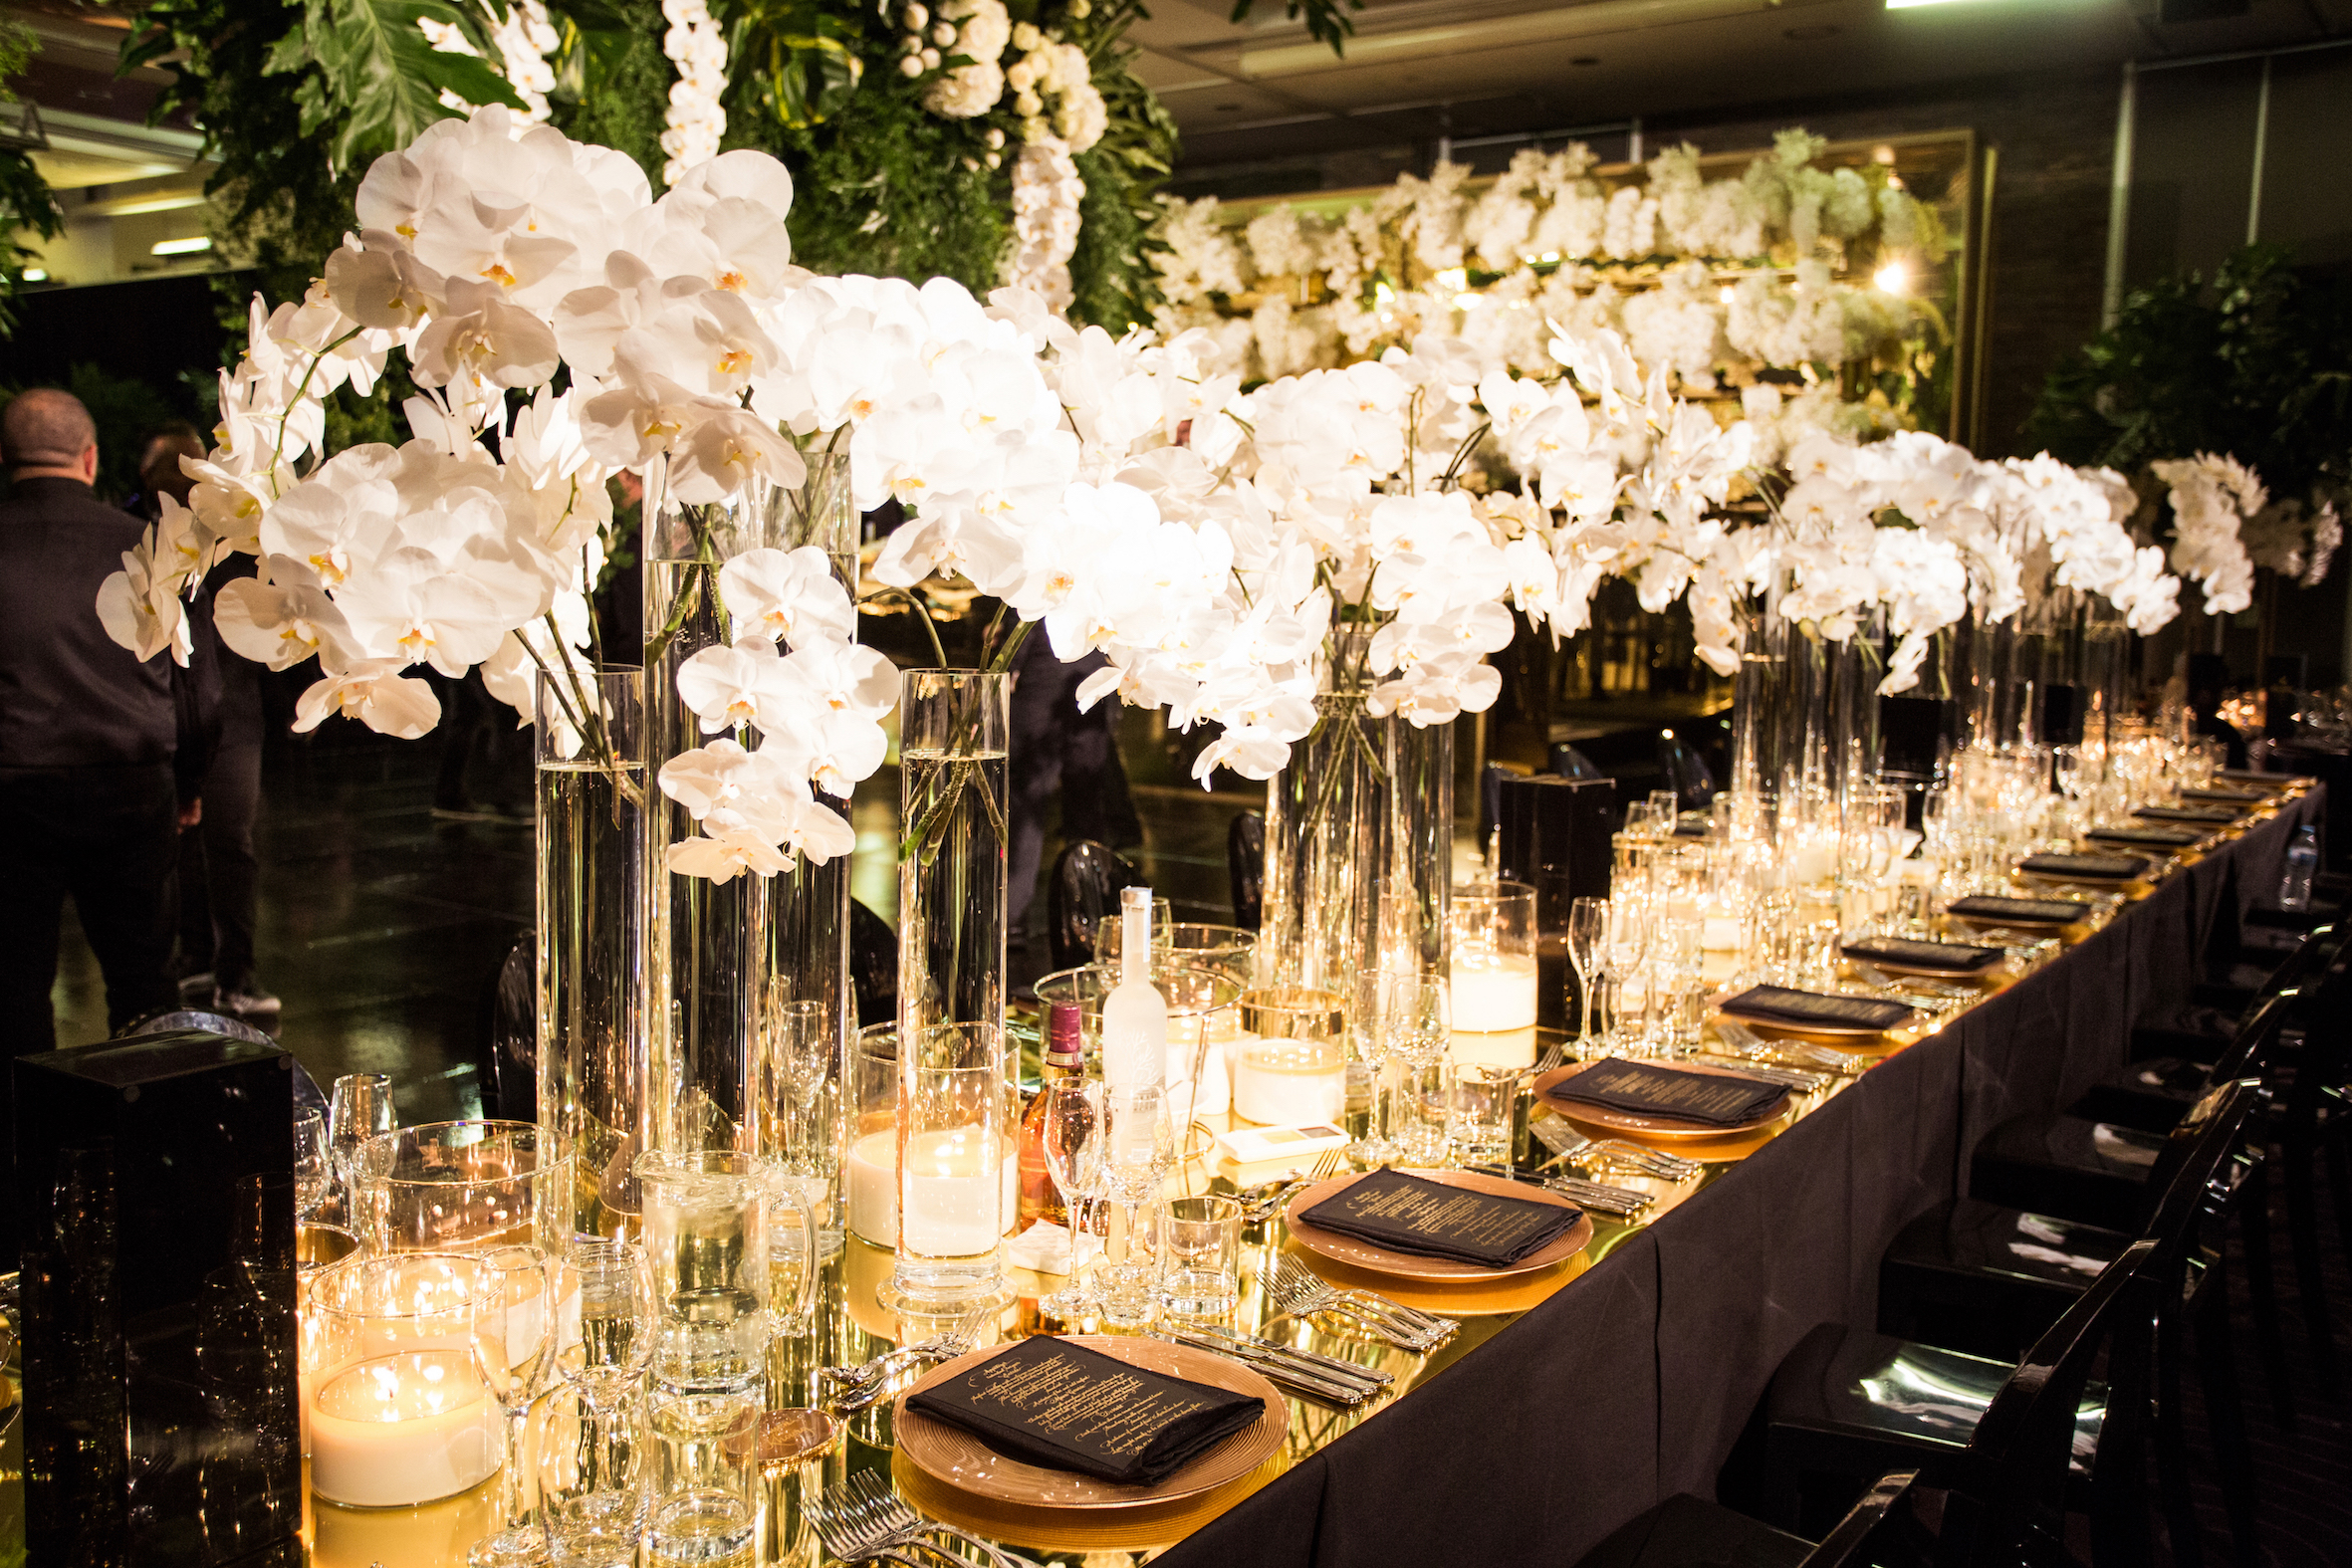 waterview_gold_mirror_table_top_orchids_centrepiece_black_green_cahrger_plates.jpg